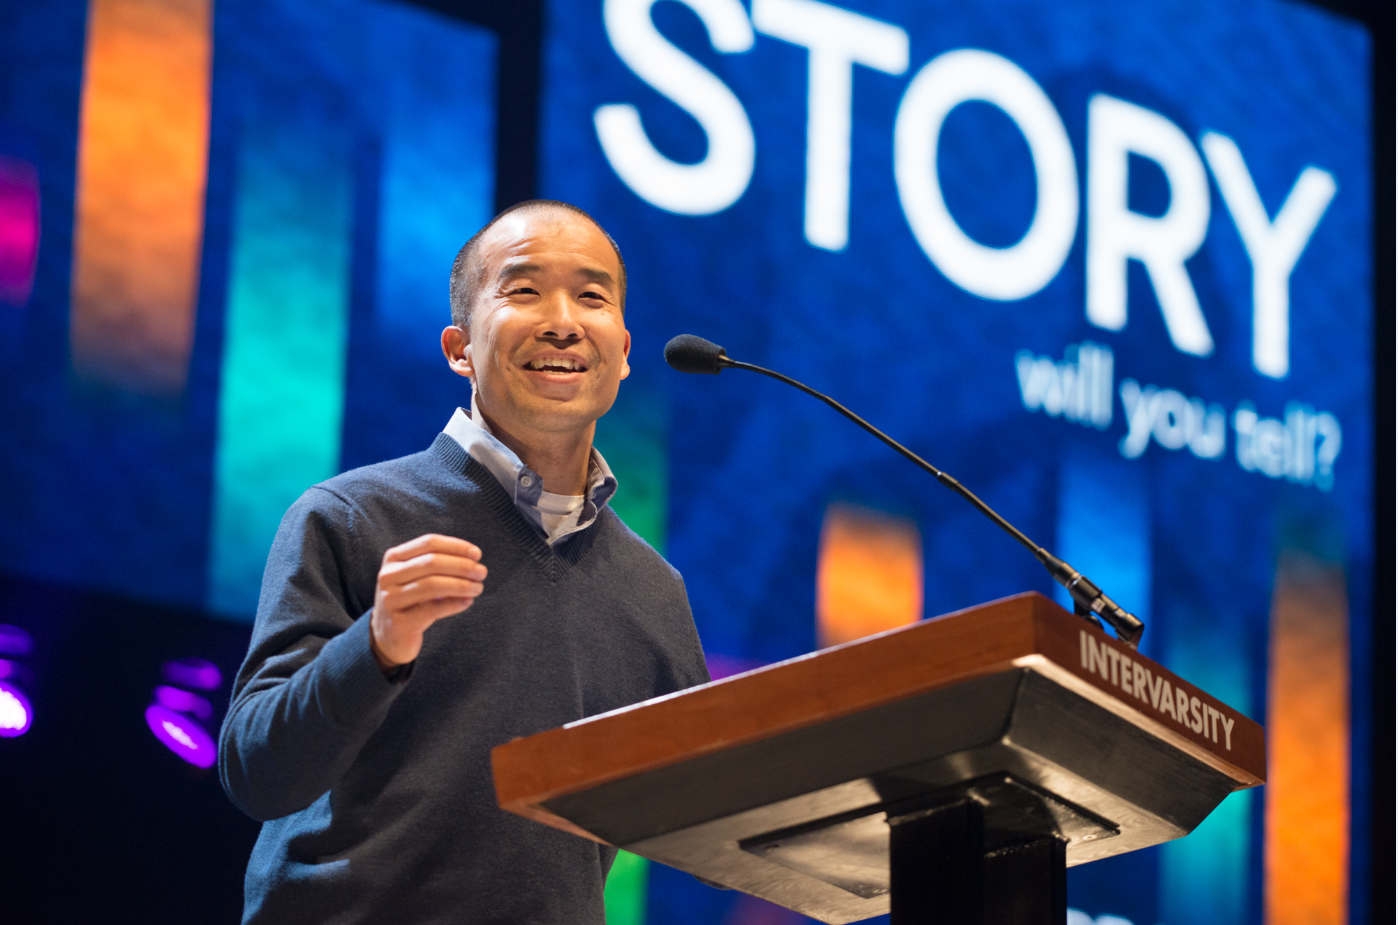 Tom Lin brings diversity to InterVarsity Christian Fellowship.